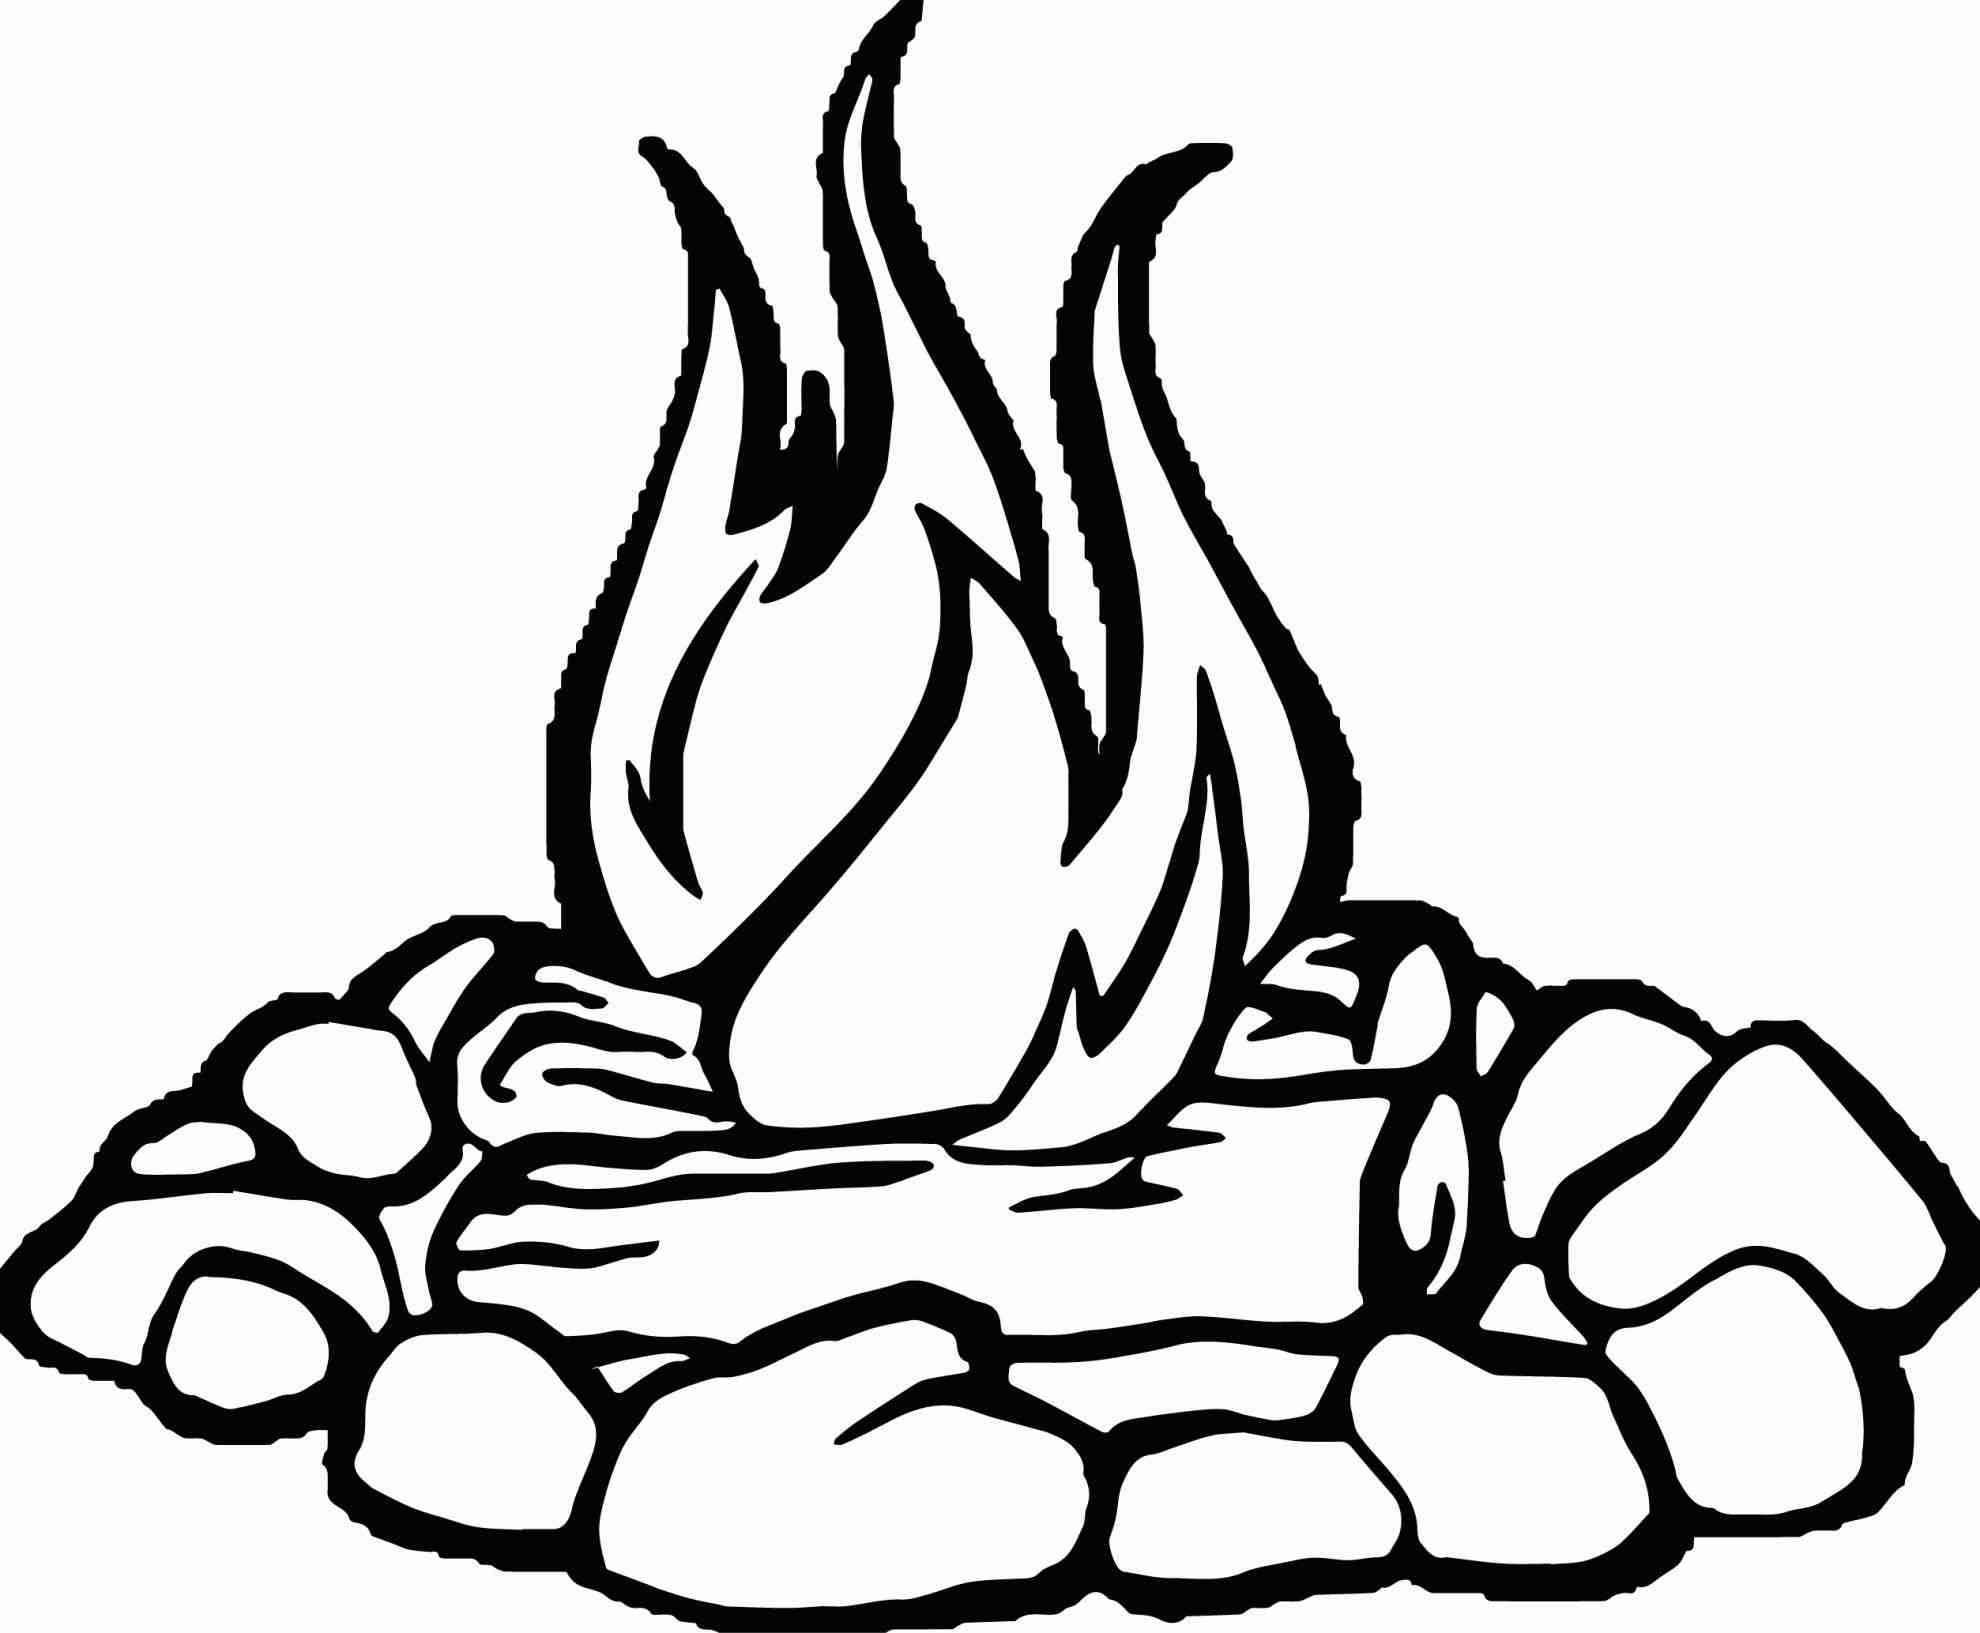 fire coloring pages printable fire coloring pages download and print fire coloring pages fire coloring pages printable